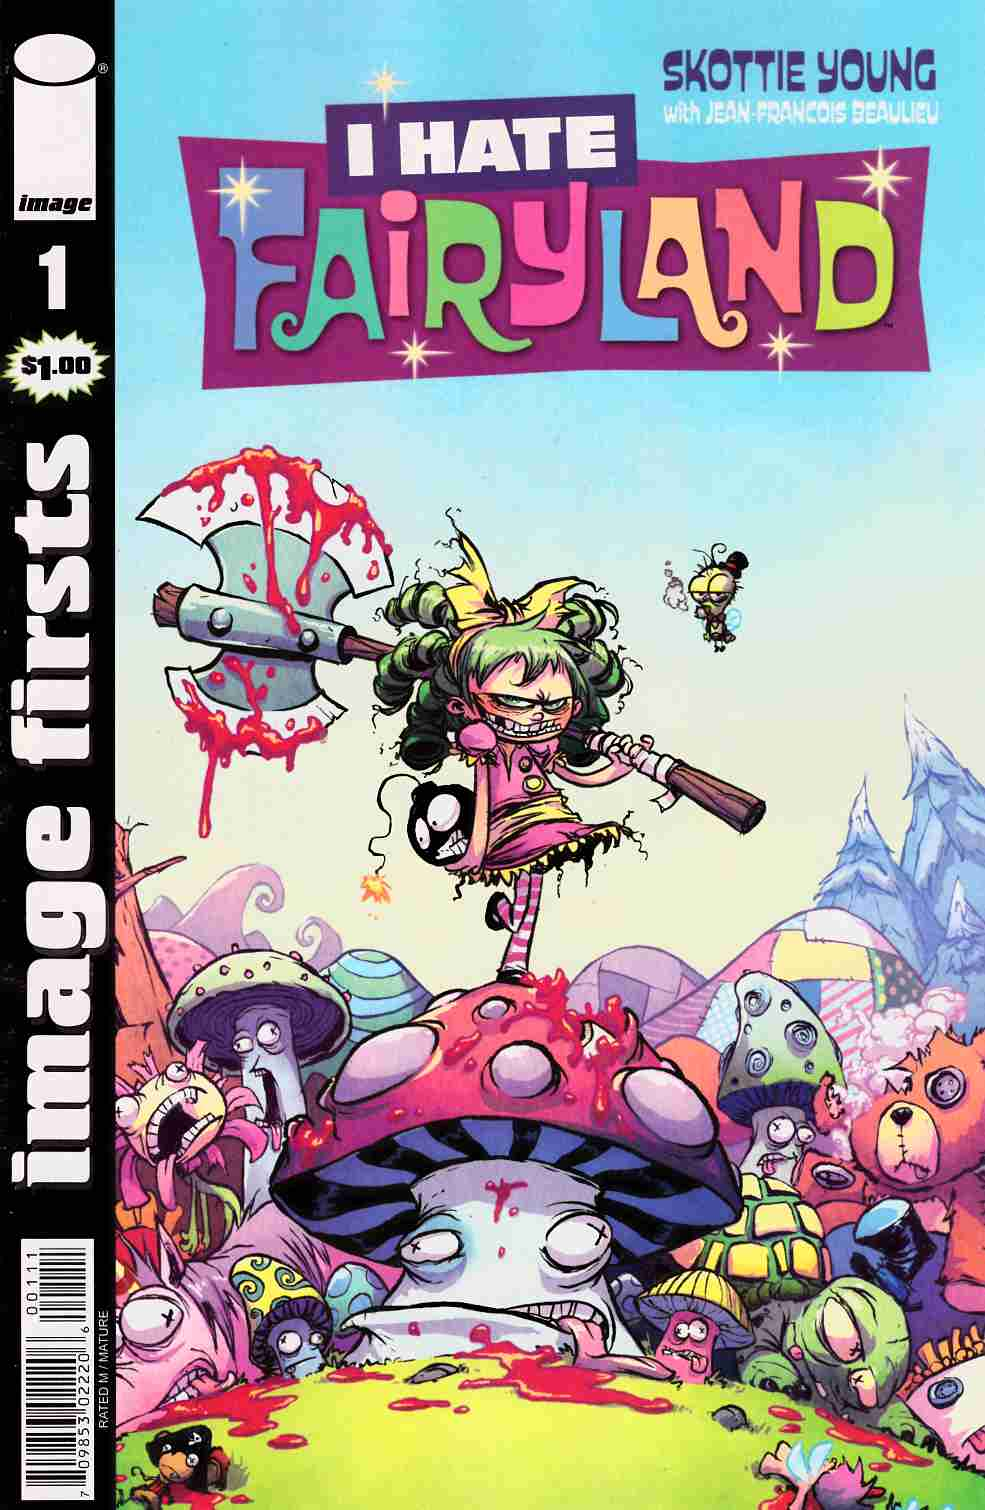 I Hate Fairyland #1 Image Firsts Edition [Image Comic] THUMBNAIL